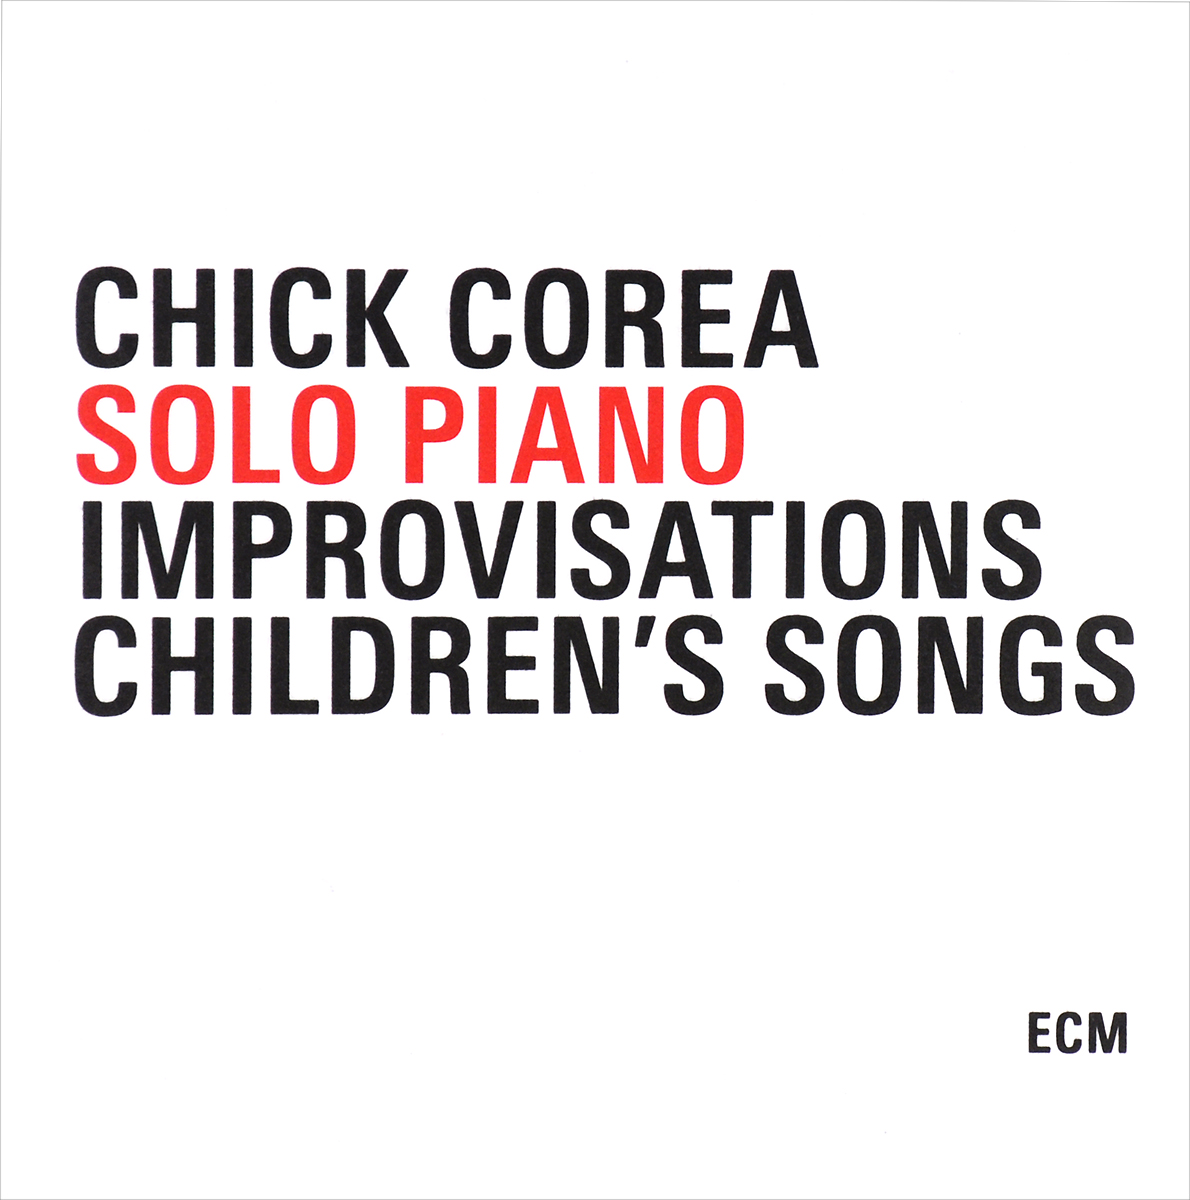 чик кориа chick corea Чик Кориа,Ида Кавафиан,Фред Шерри Chick Corea. Solo Piano / Improvisations / Children's Songs (3 CD)